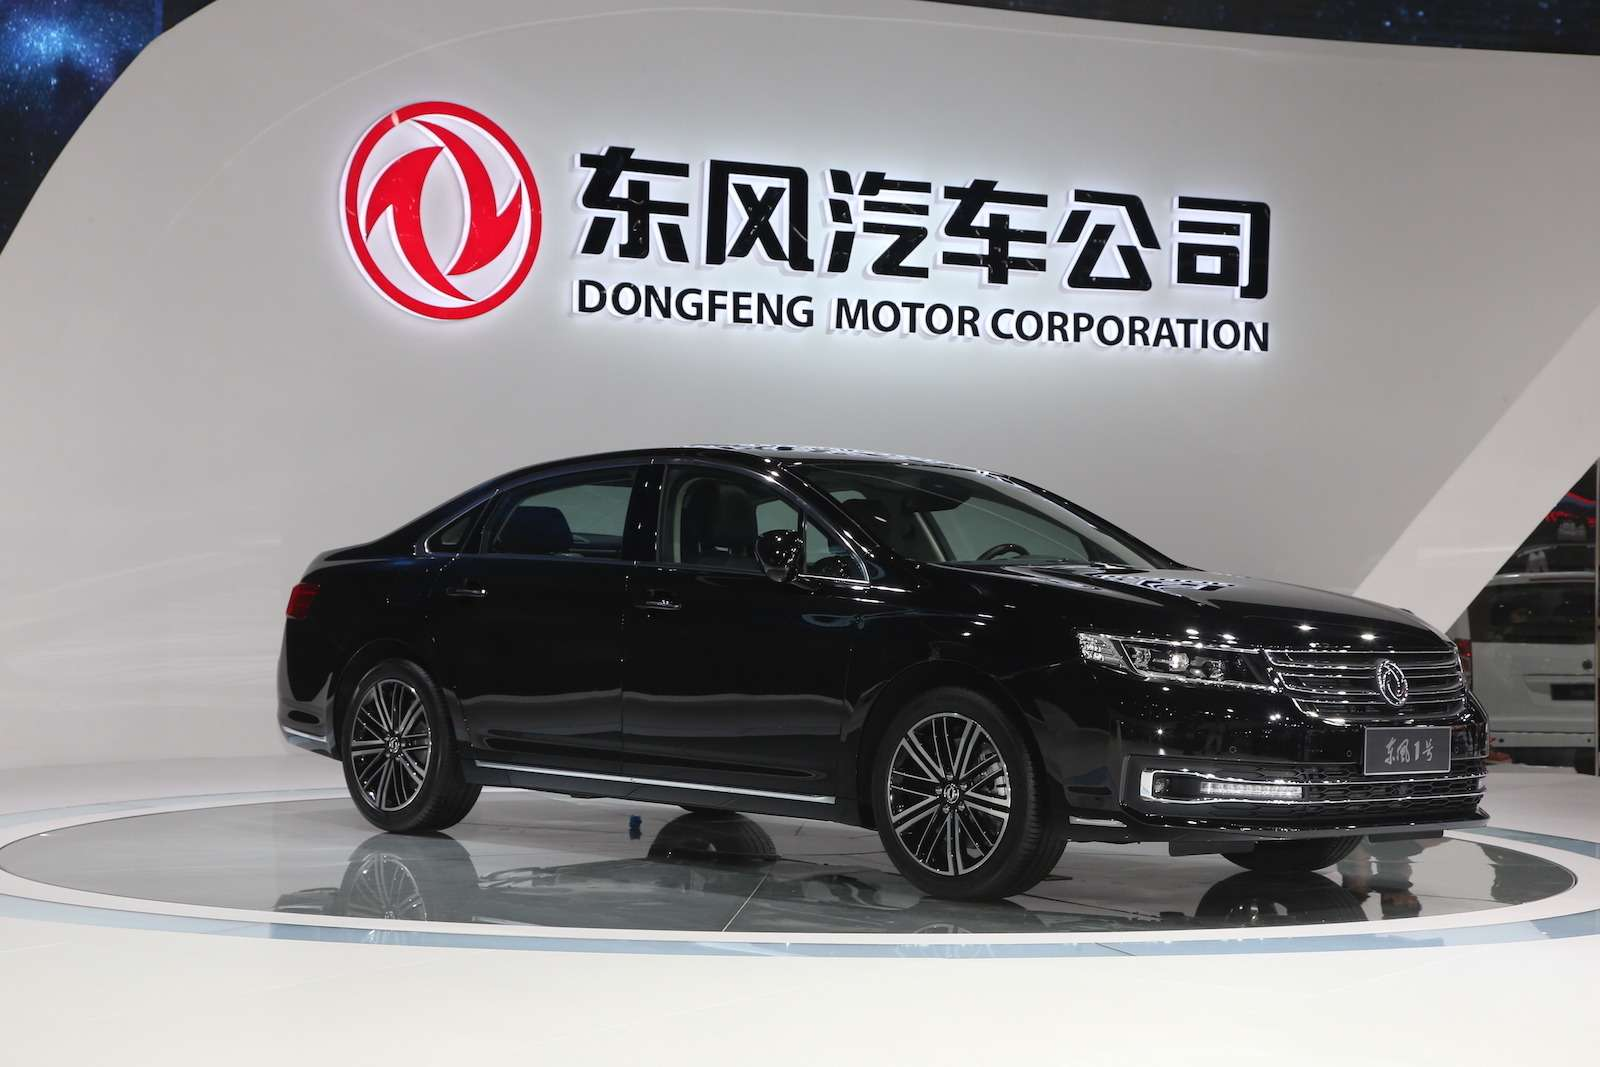 Dongfeng concept